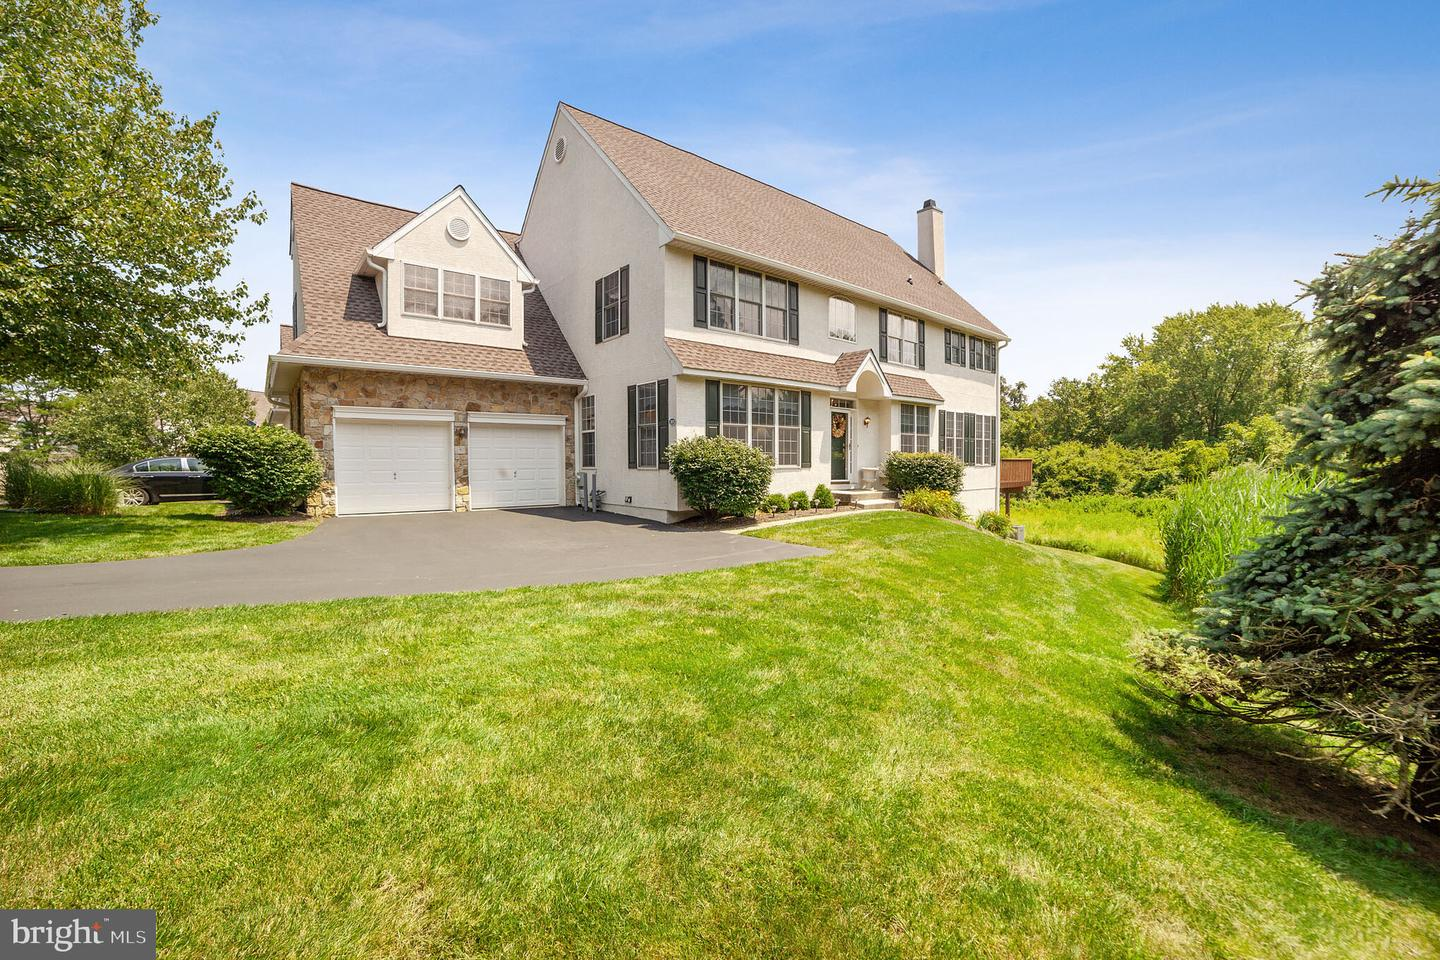 1105 Whispering Brooke Drive Newtown Square, PA 19073